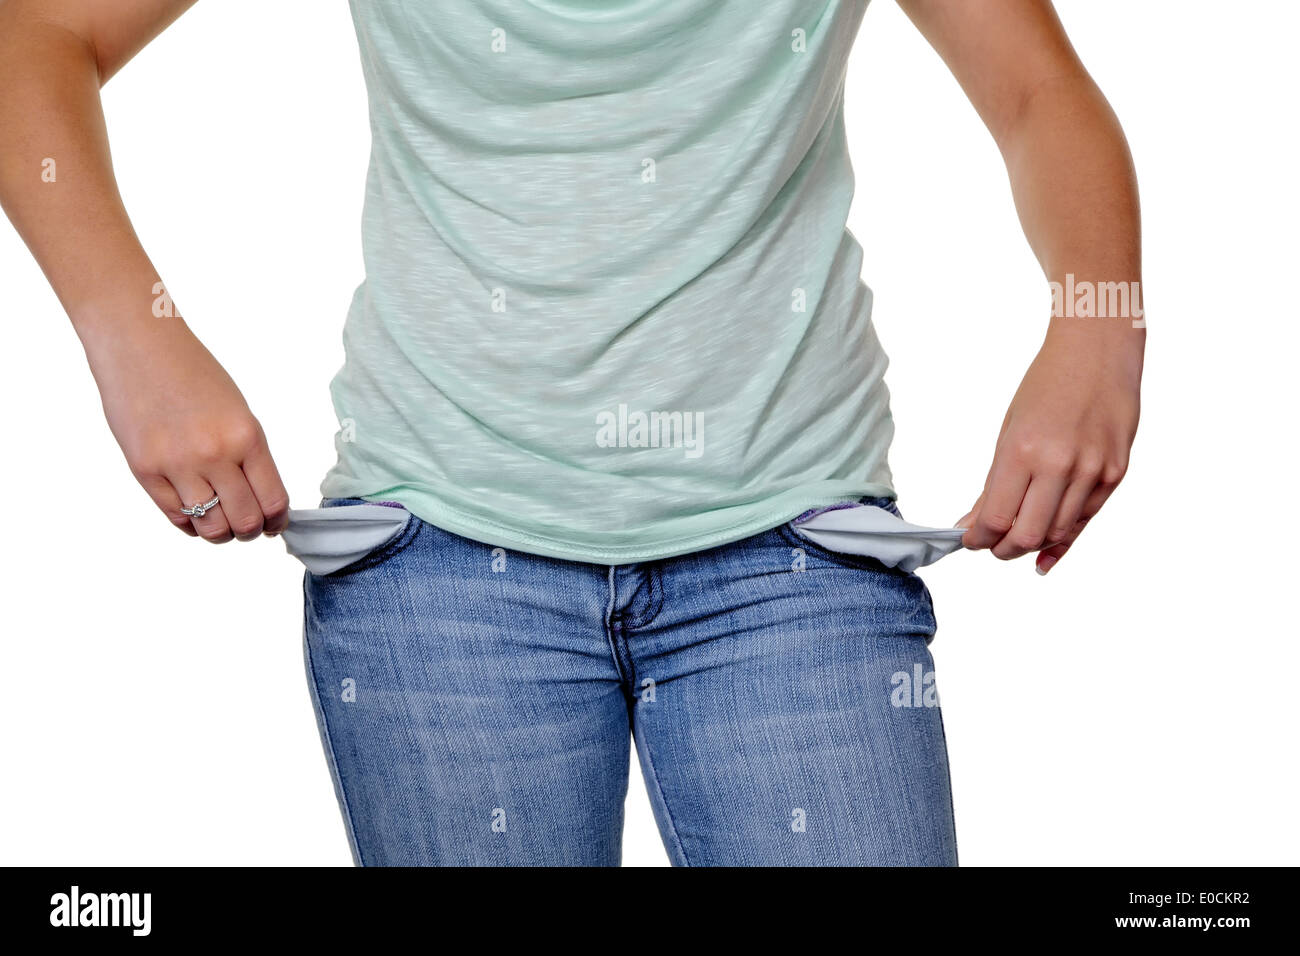 A young woman shows the empty trouser pockets of her jeans - Stock Image